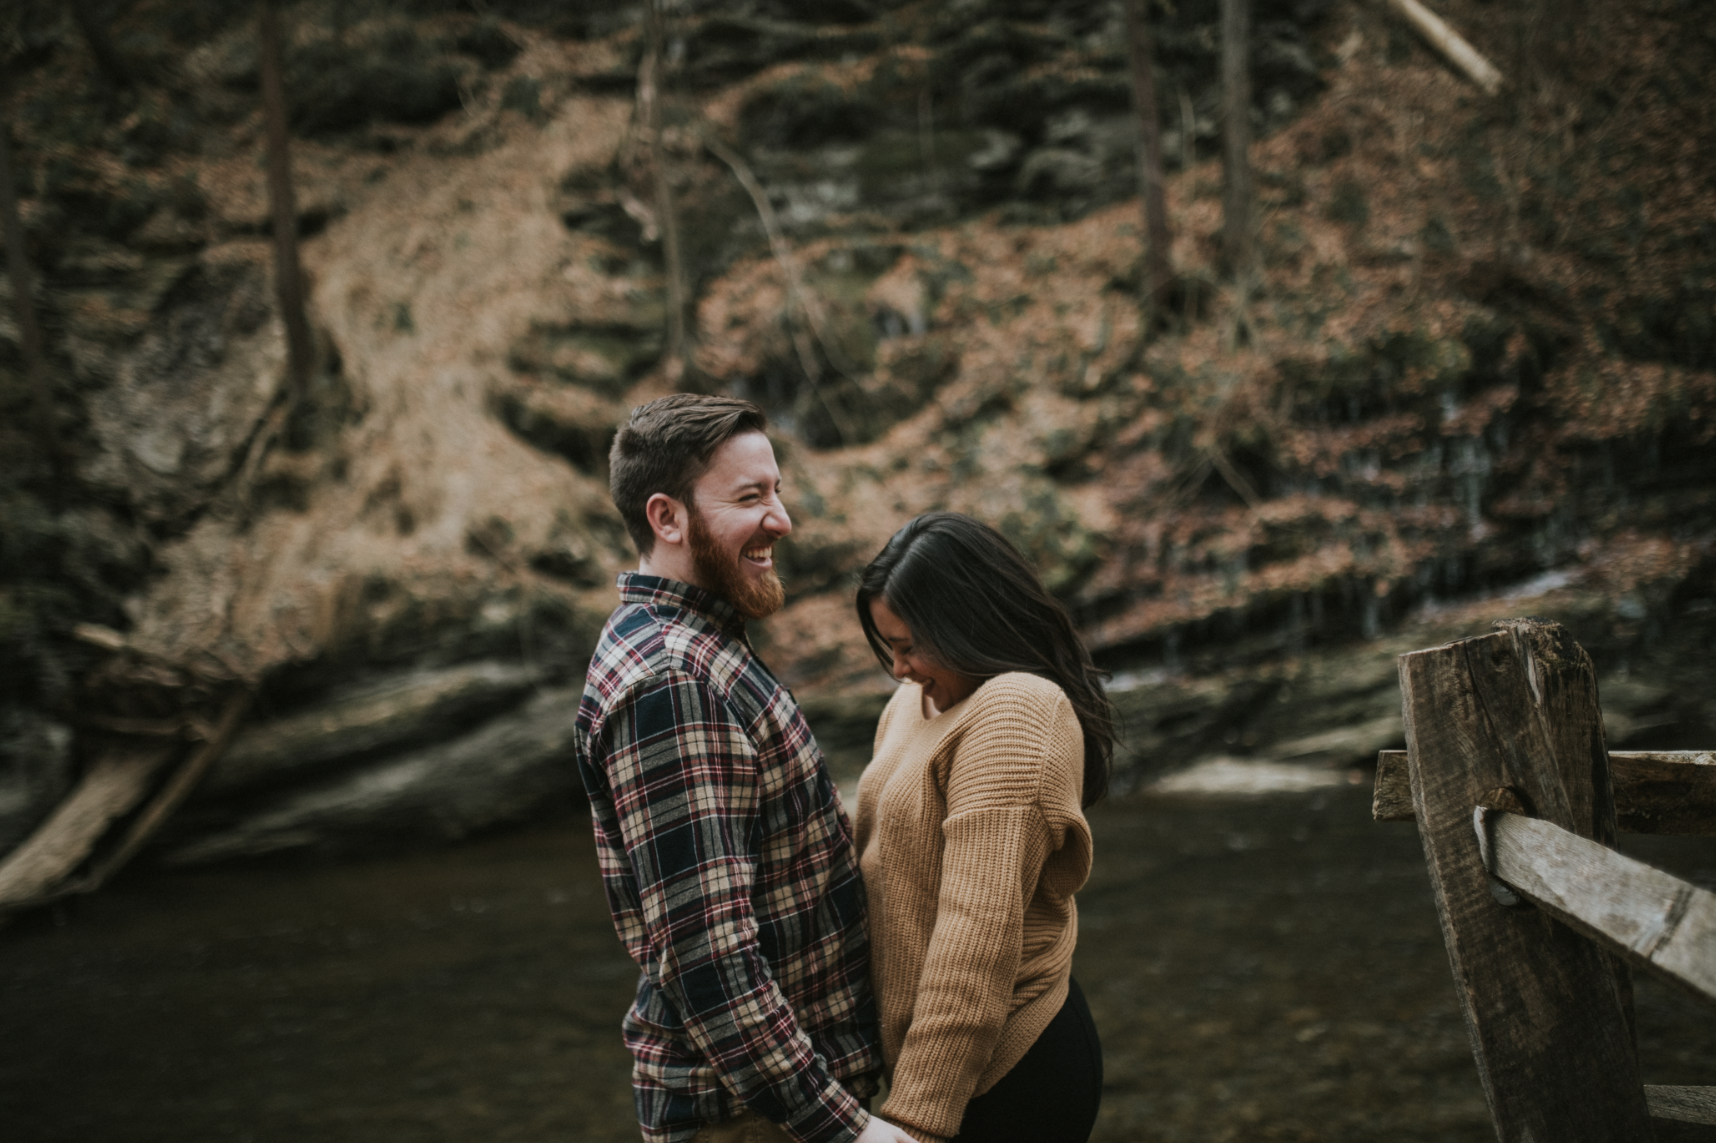 matt-natalia-winter-woods-engagement-session-pennsylvania-wedding-photographer-26